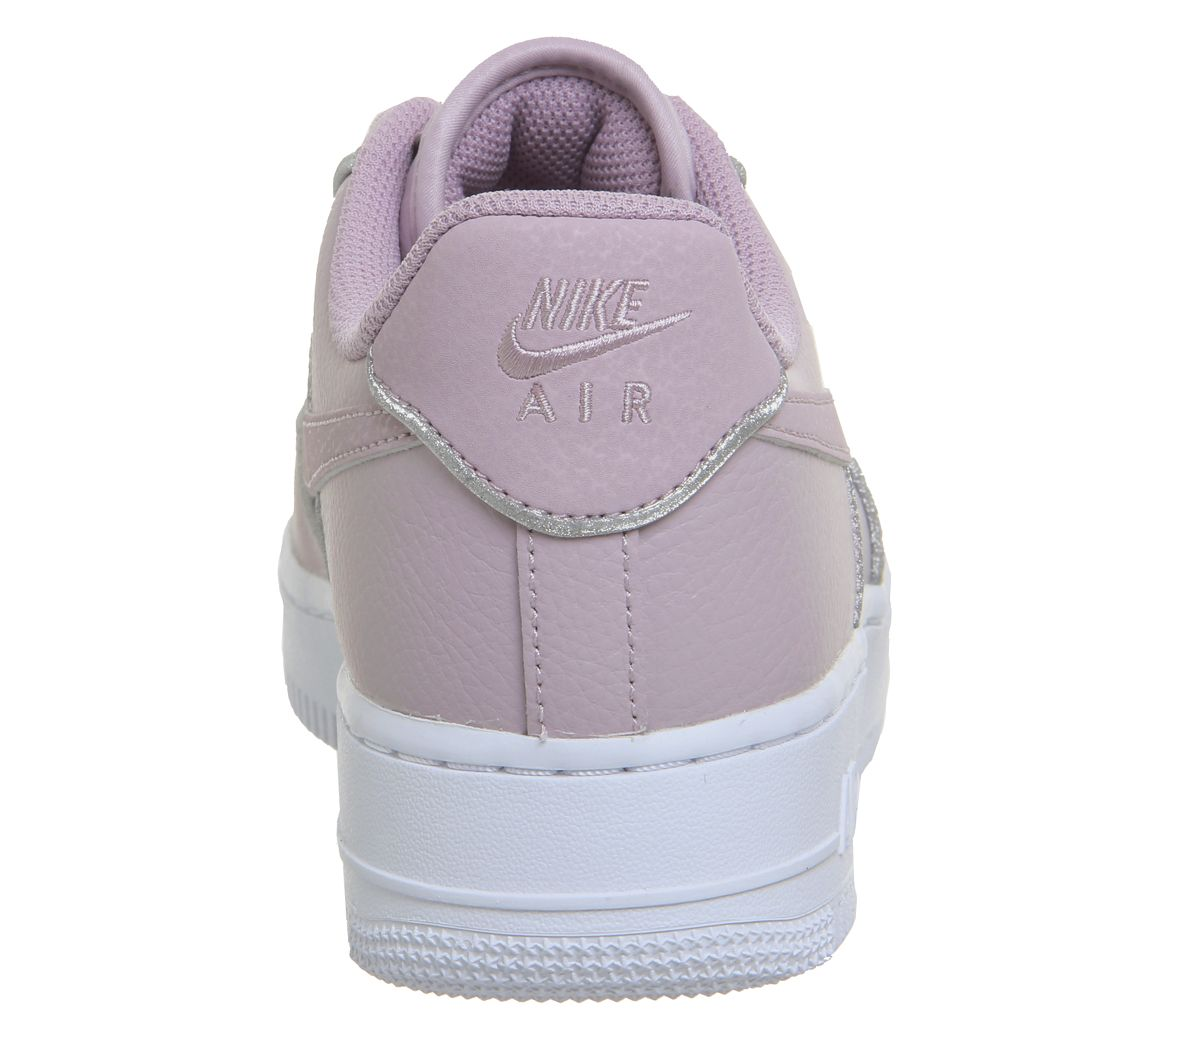 fcbbf64f6 Nike Air Force 1 07 Trainers Particle Rose Glitter - Hers trainers